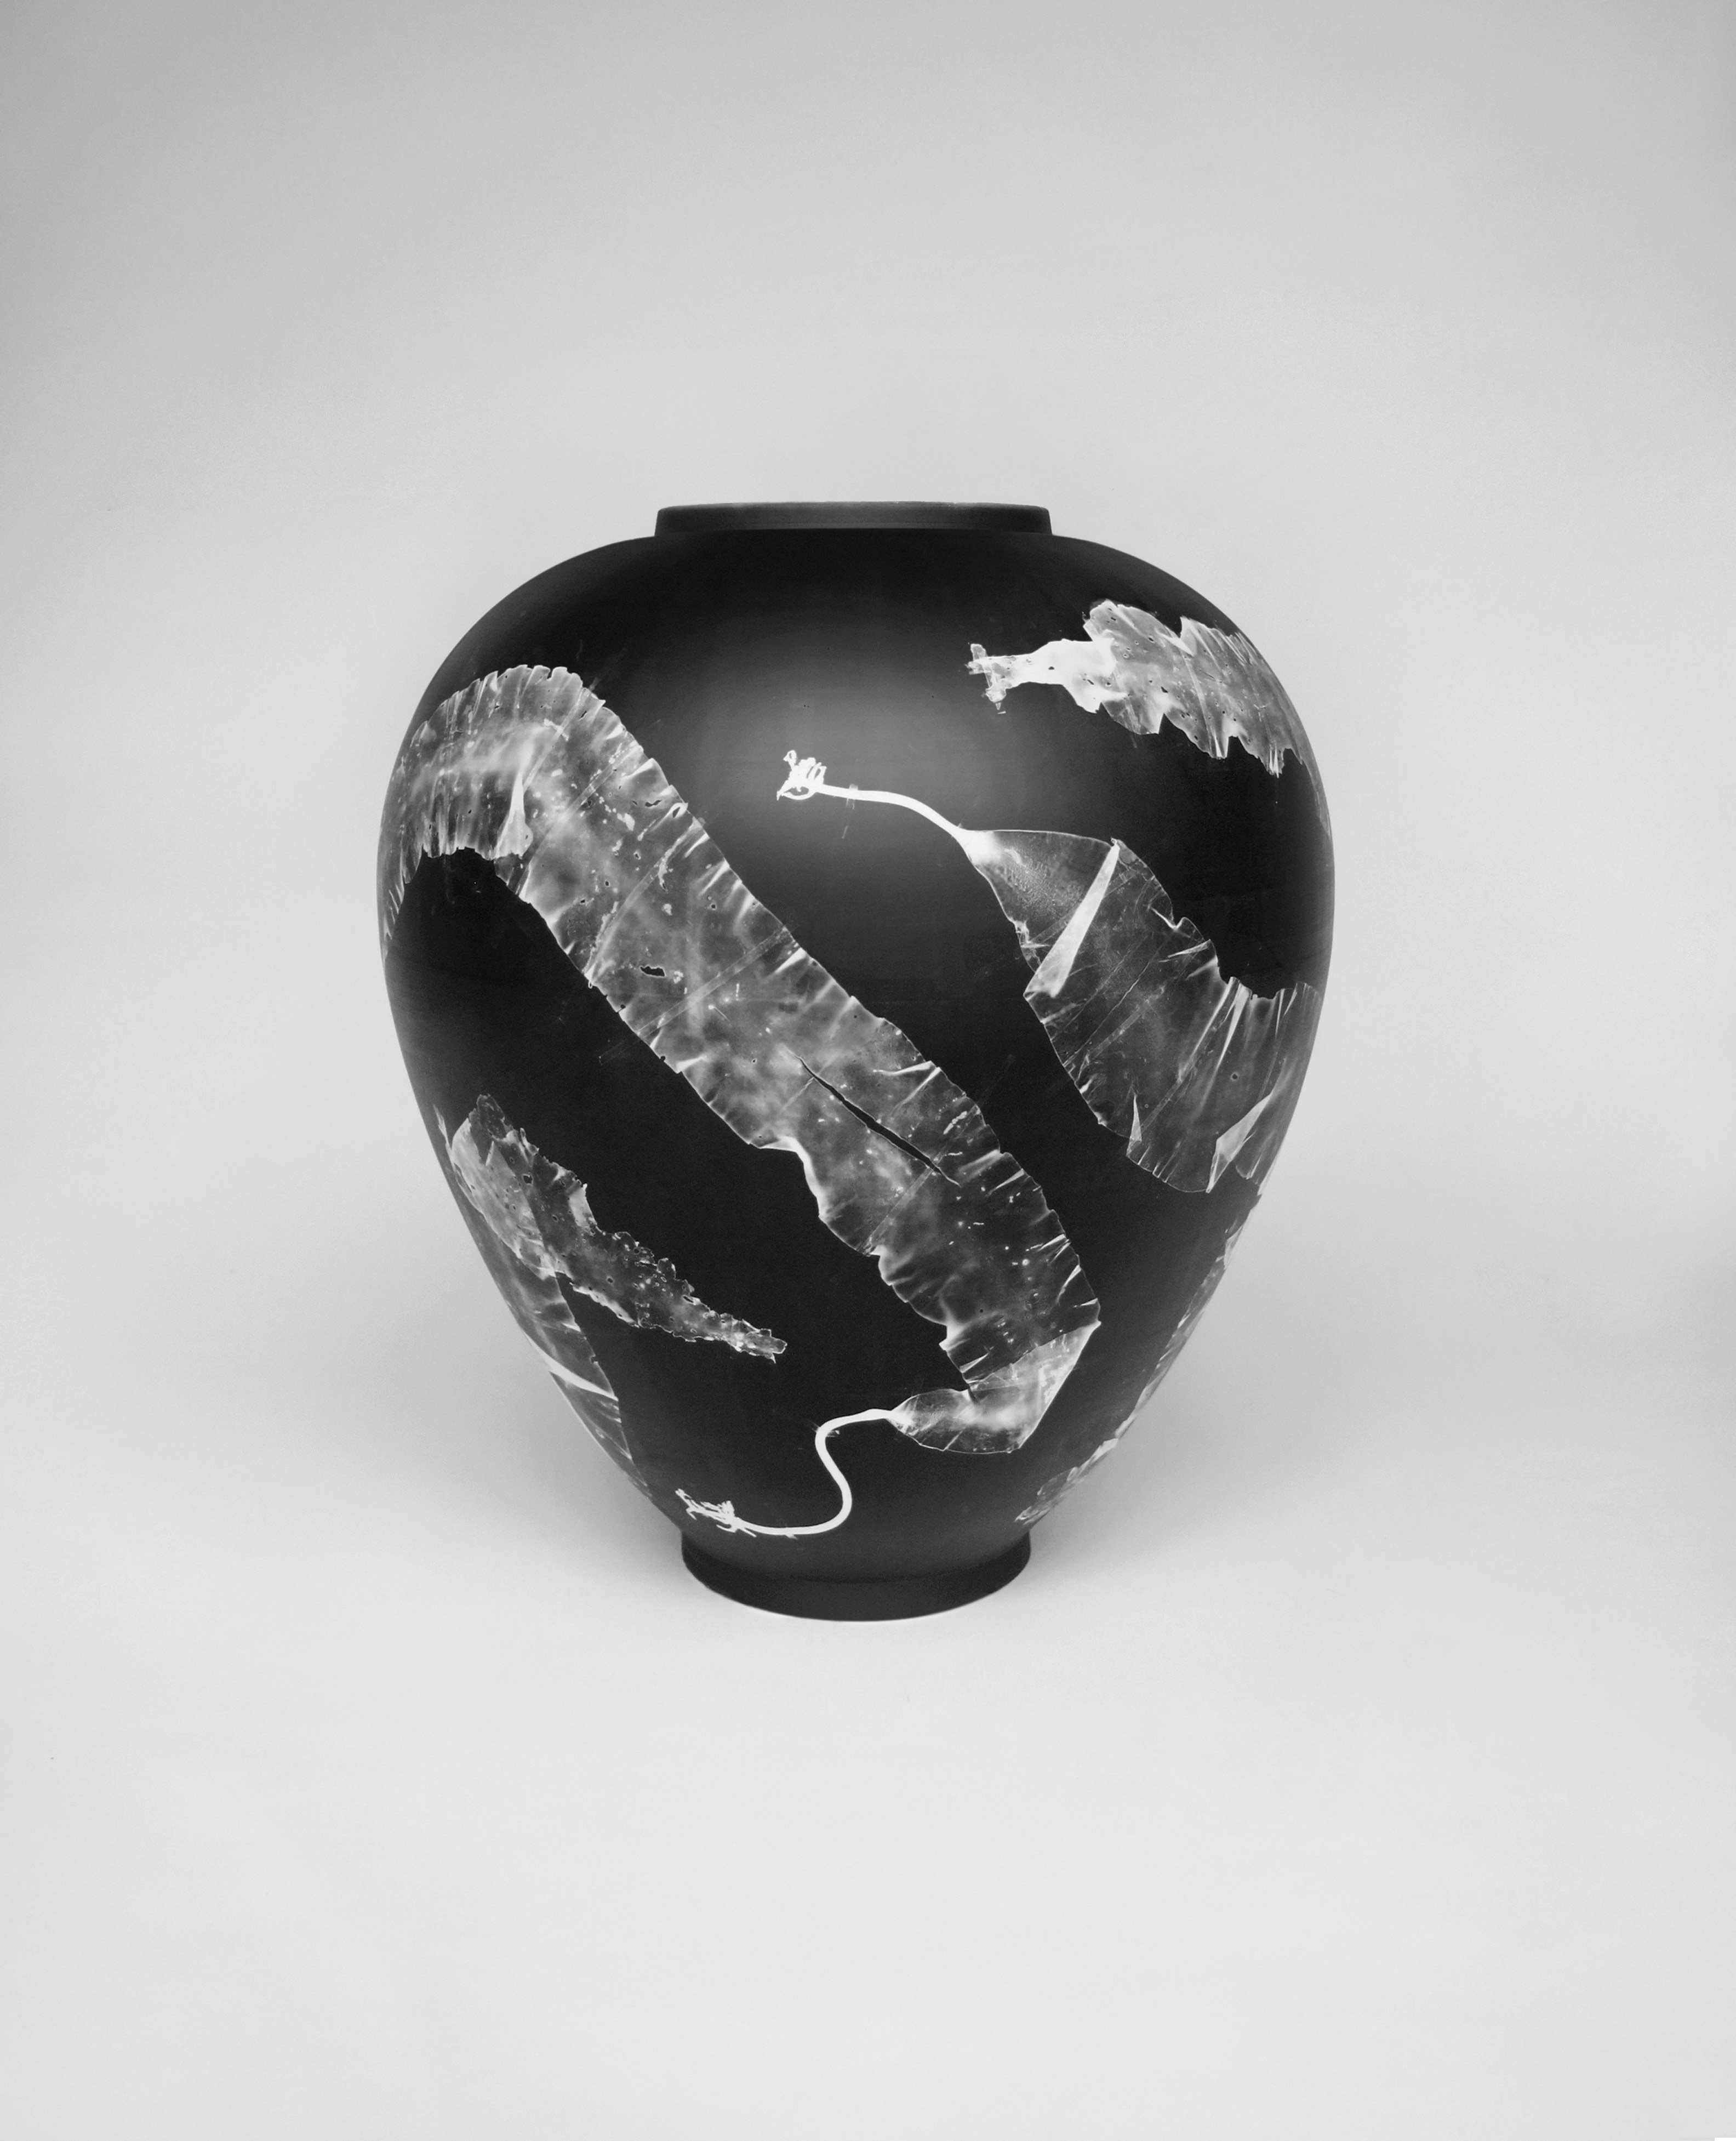 Silverware is a collection of porcelain vases with silver gelatin photograms of coastal seaweed. The images on the vases have been created using an original photographic technique. Seaweeds are temporarily attached to the surface of sensitised vases before being resolved within a beam of light.